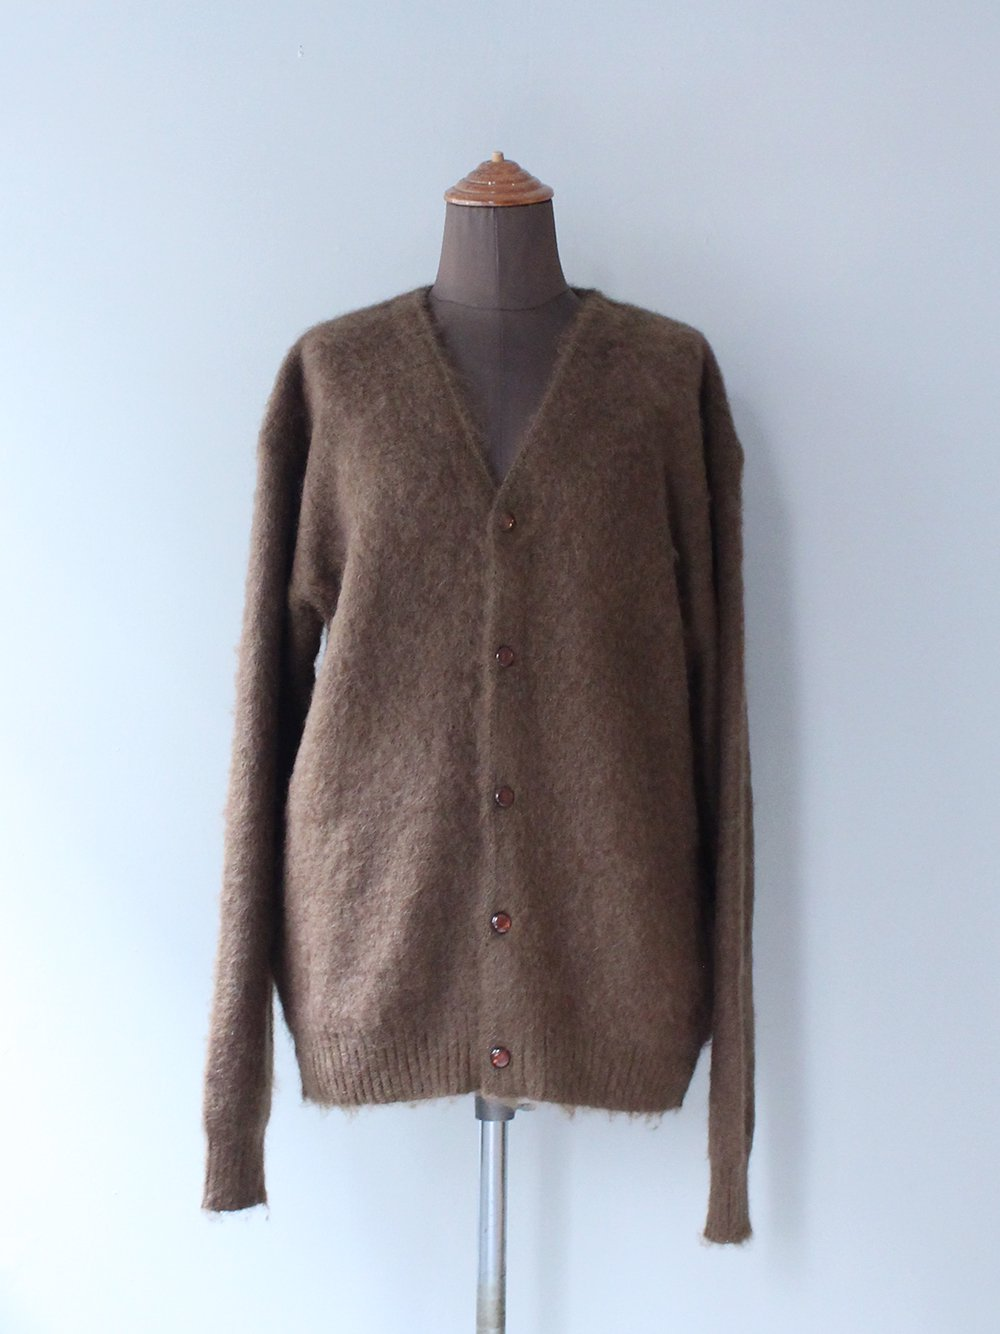 """<img class='new_mark_img1' src='https://img.shop-pro.jp/img/new/icons8.gif' style='border:none;display:inline;margin:0px;padding:0px;width:auto;' />Needles """" Mohair cardigan - Solid (BROWN)"""""""